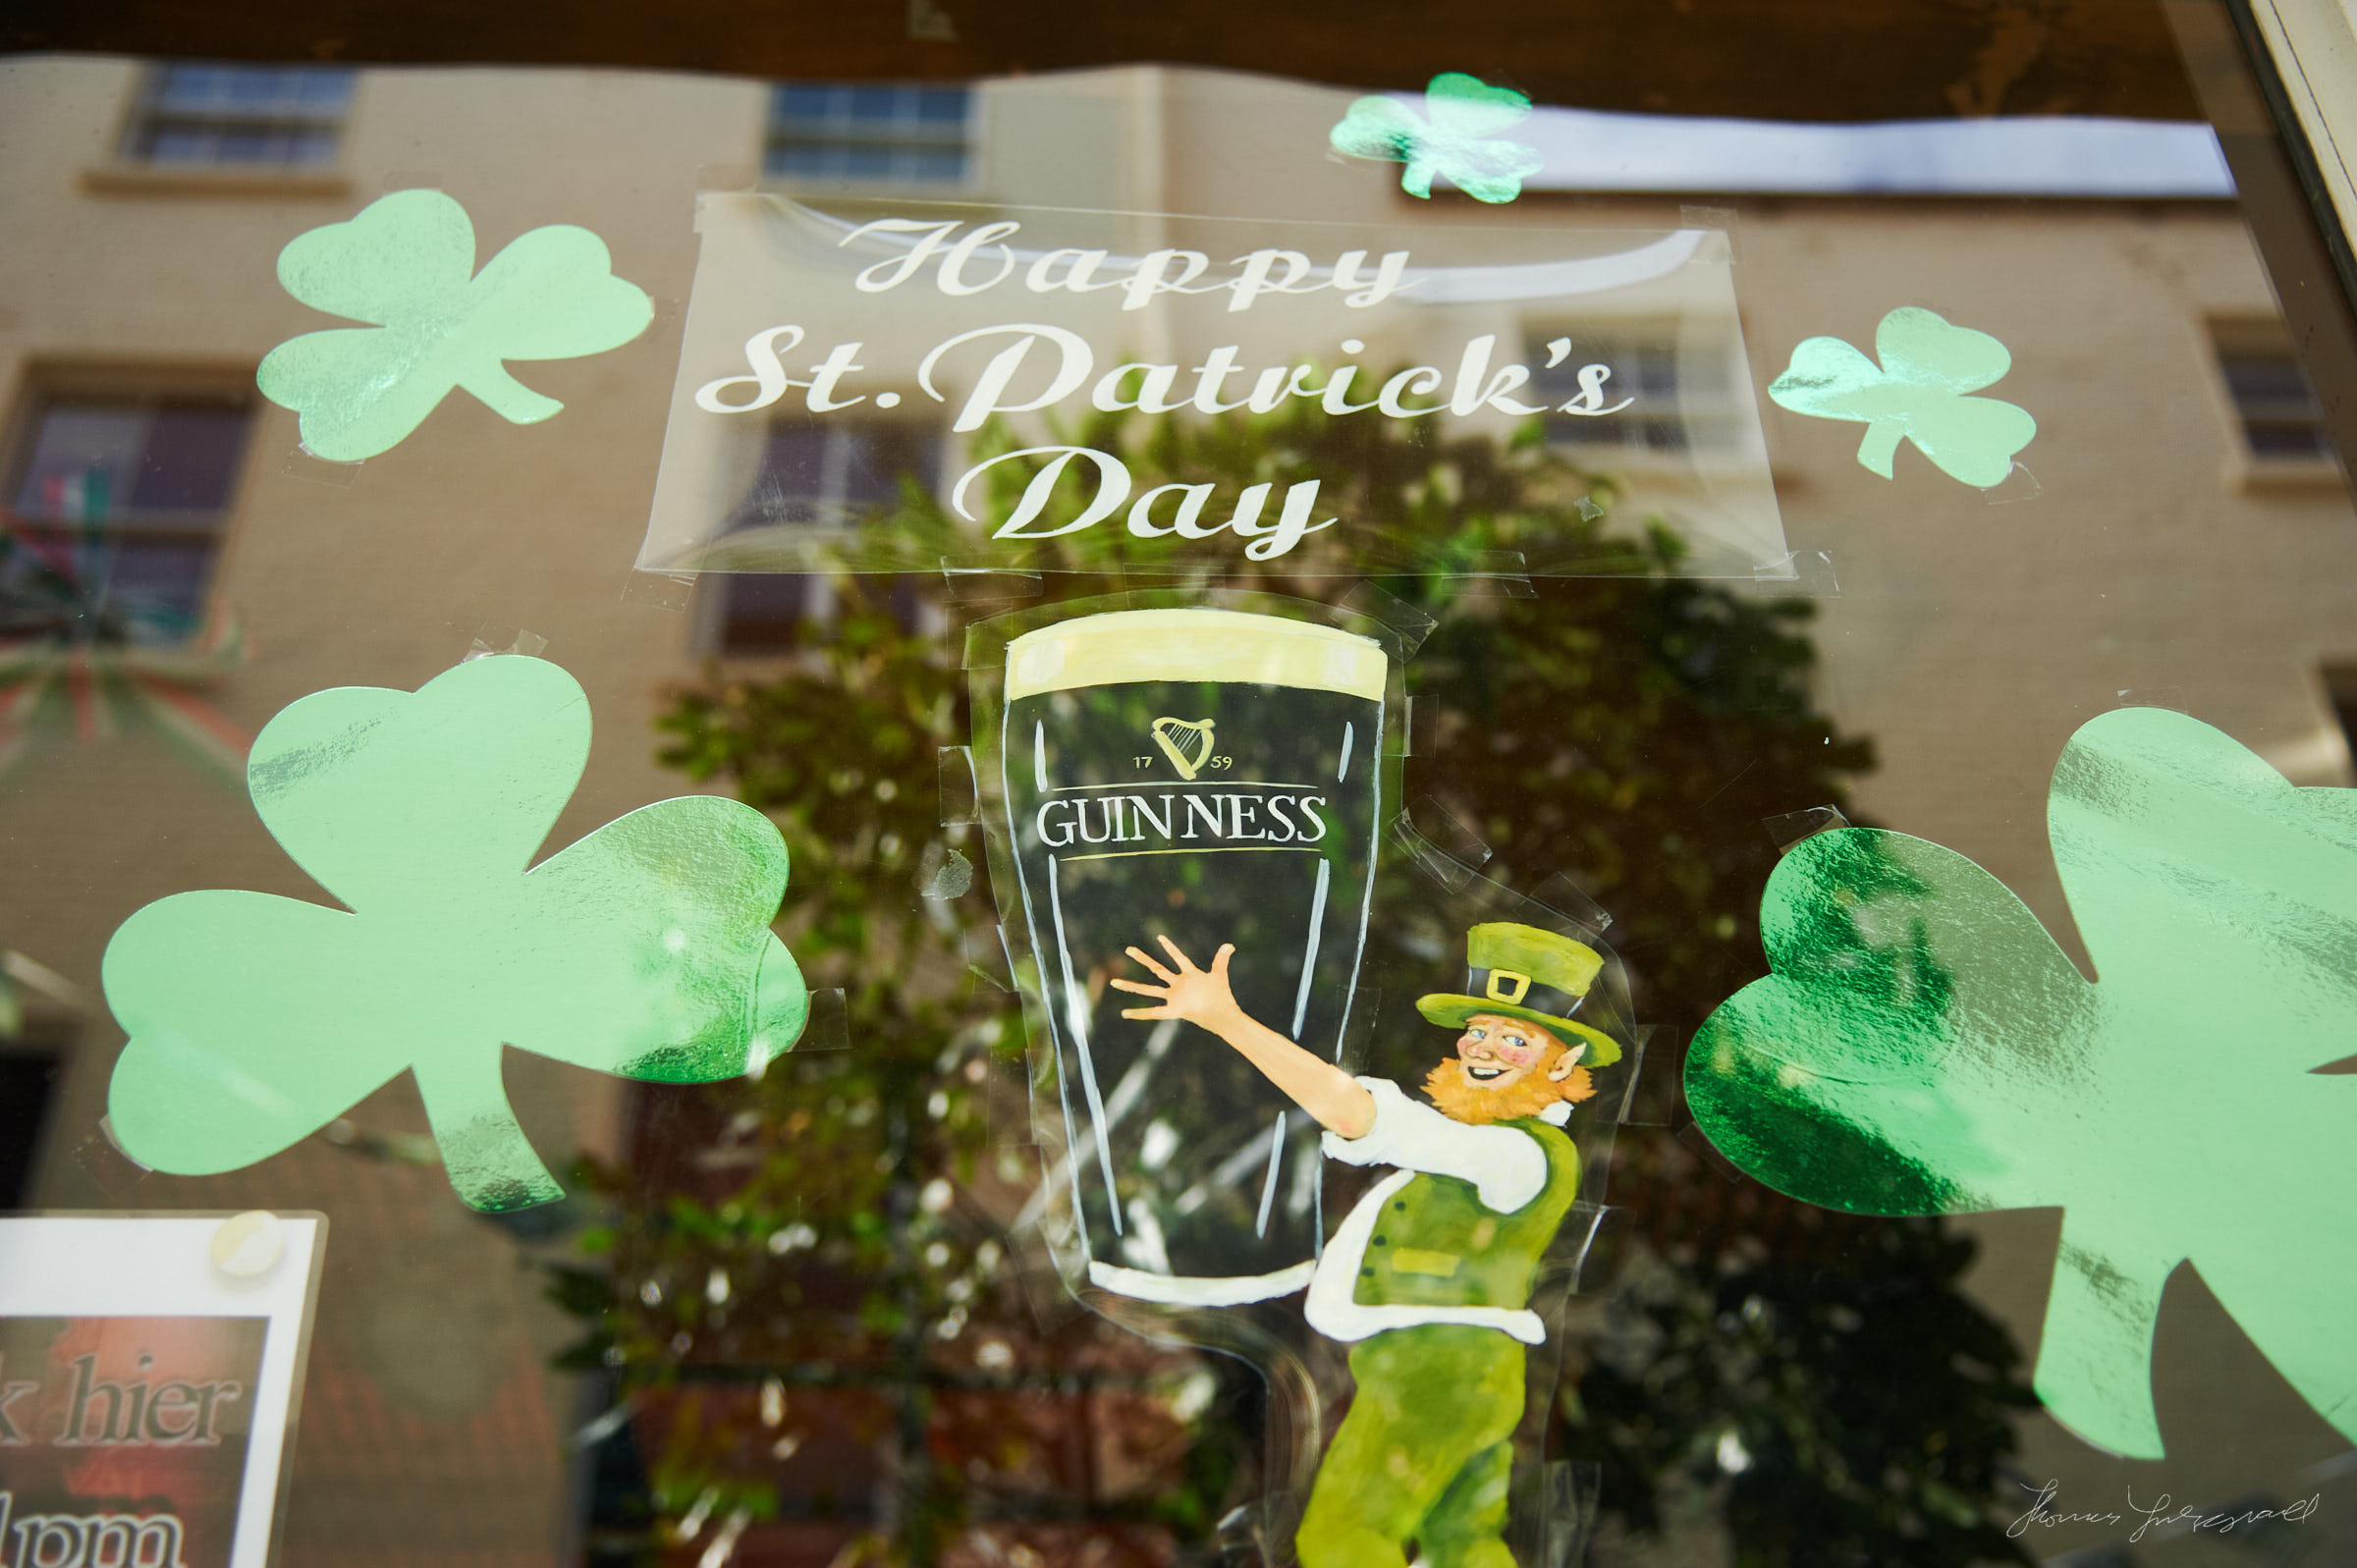 St. Patricks Day Decorations in Dublin City - The Streets of Dublin